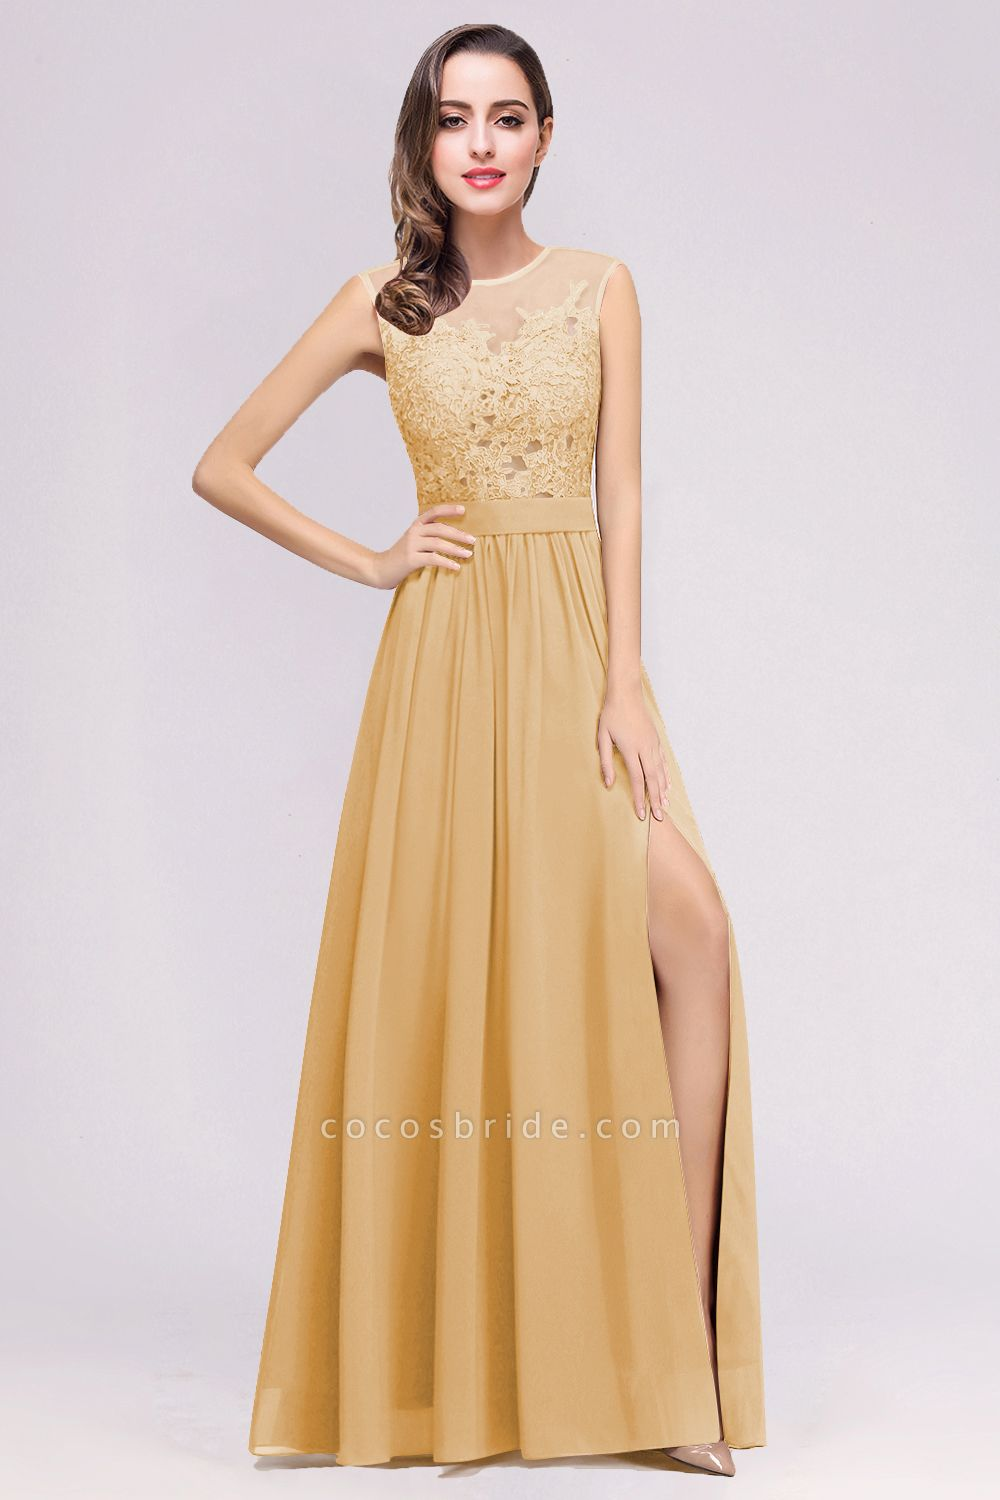 Lace Chiffon Floor-Length A-line Bridesmaid Dress